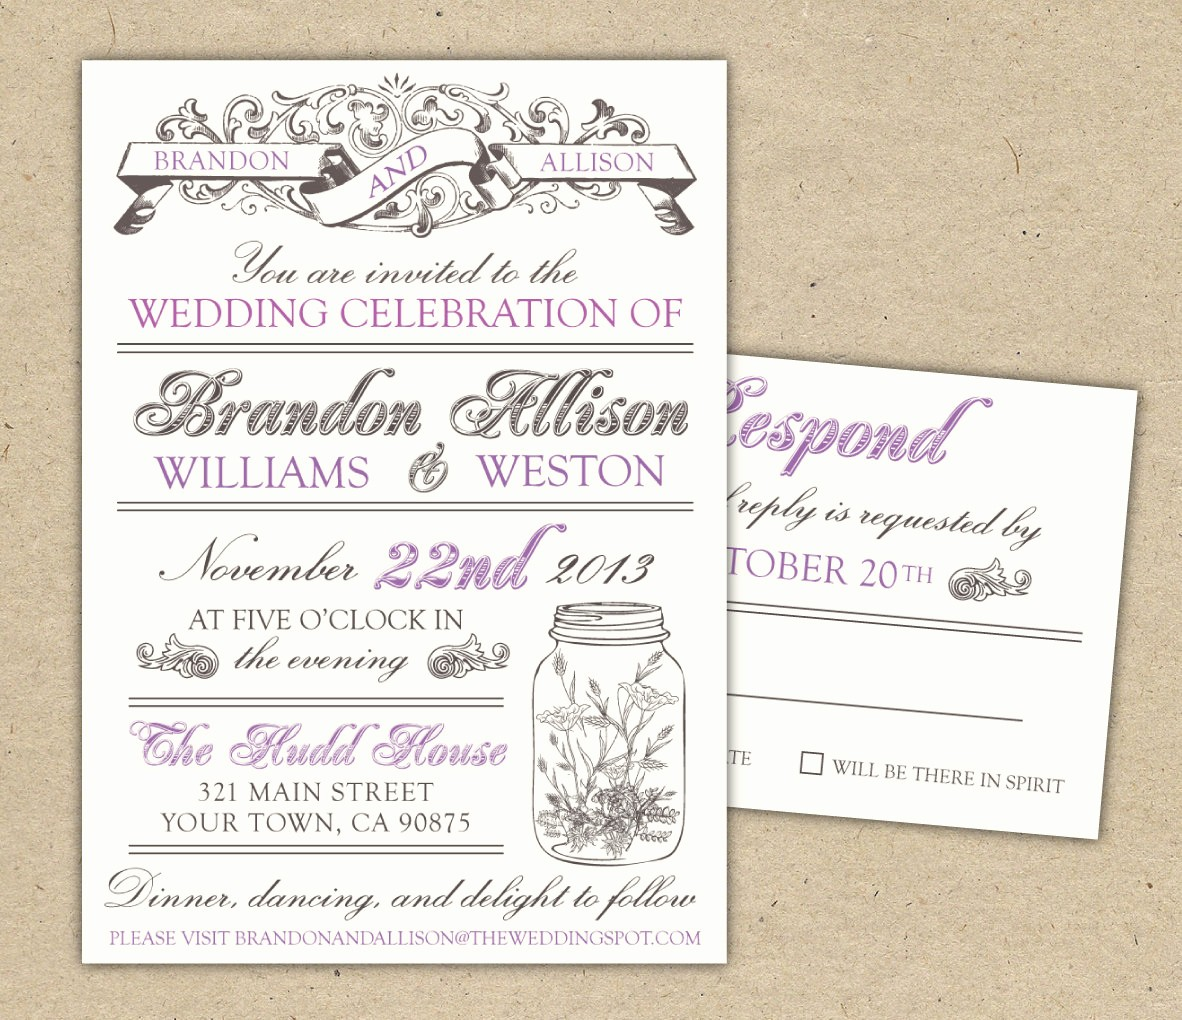 Wedding Invitations Templates Word Free Lovely 30 Unique Vintage Wedding Invitations